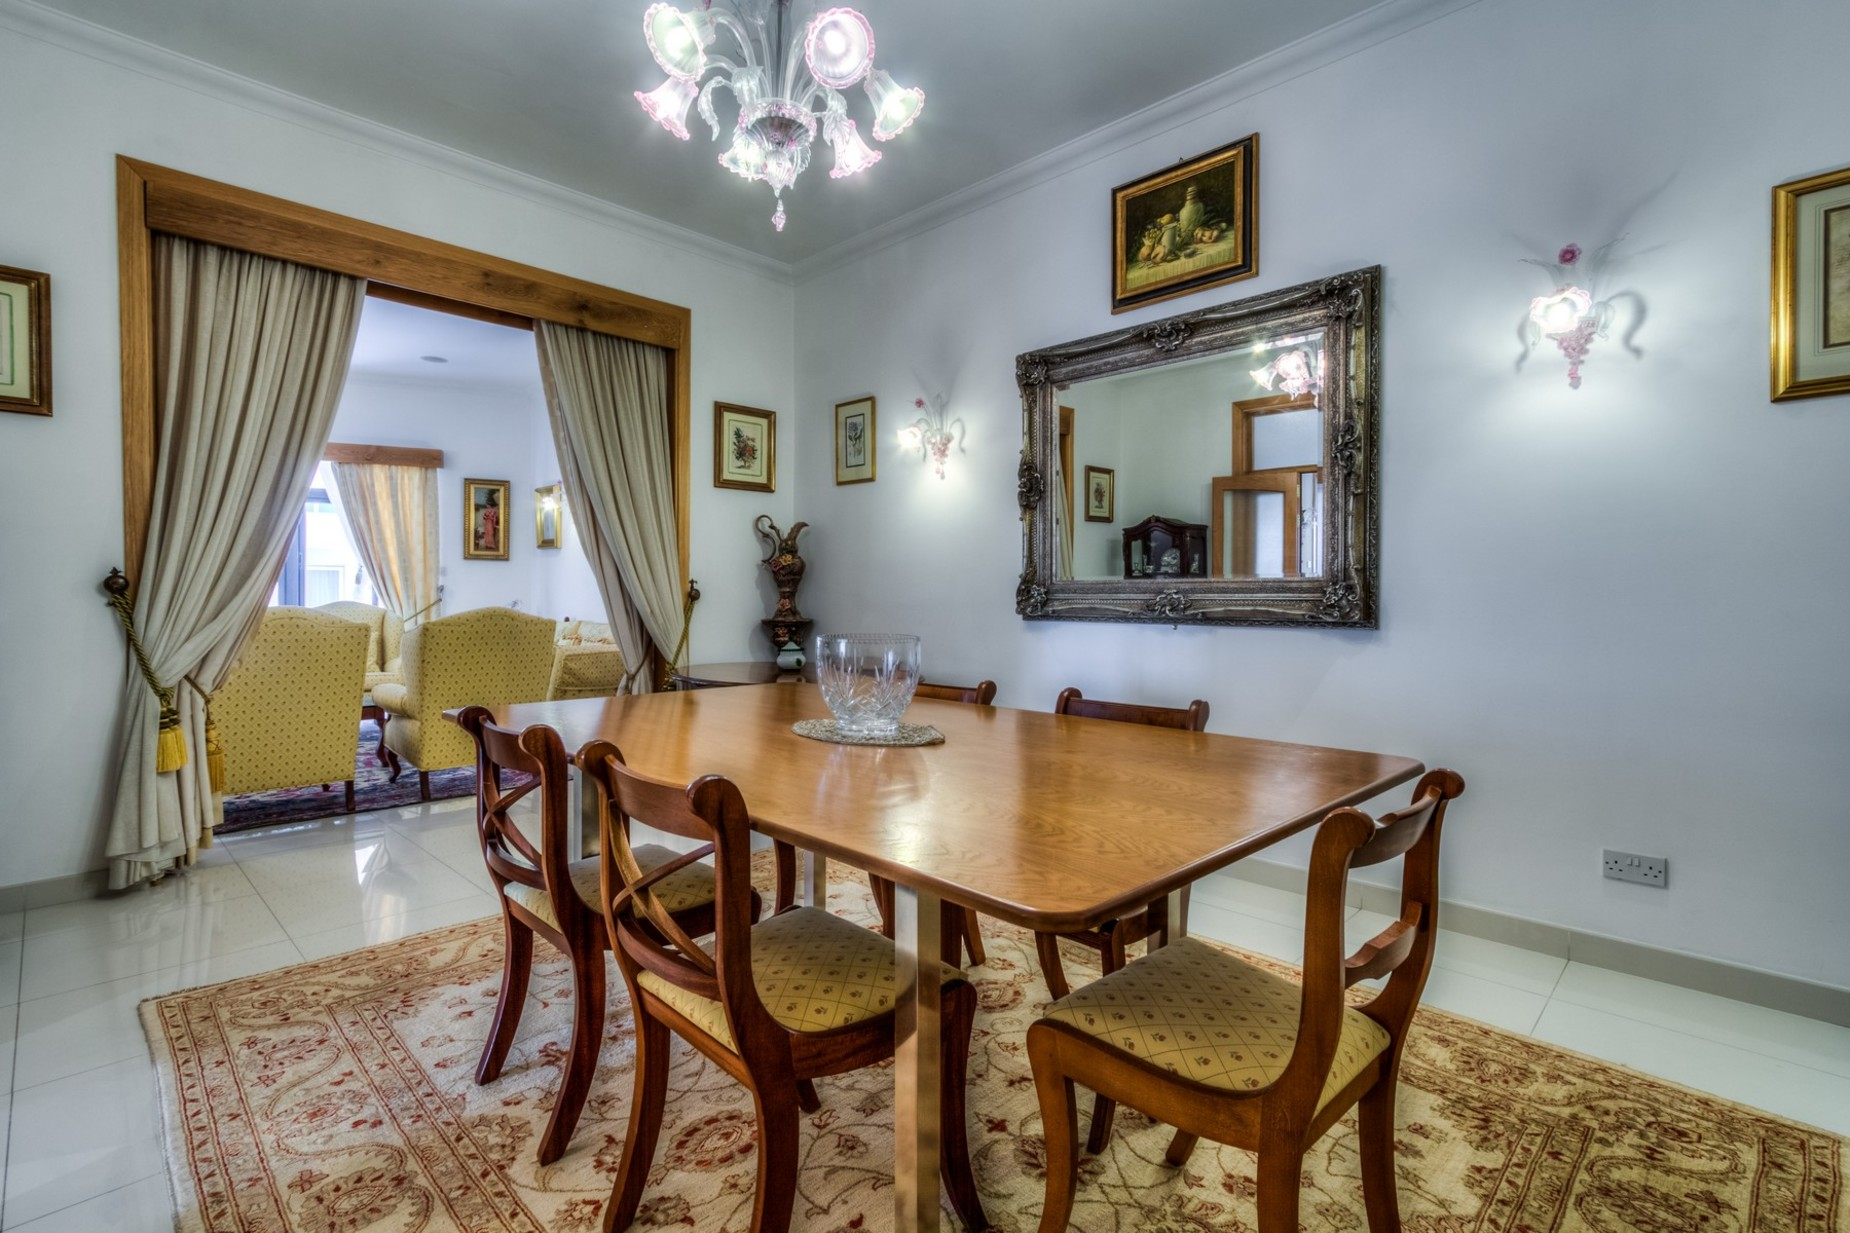 5 bed Apartment For Sale in Sliema, Sliema - thumb 7